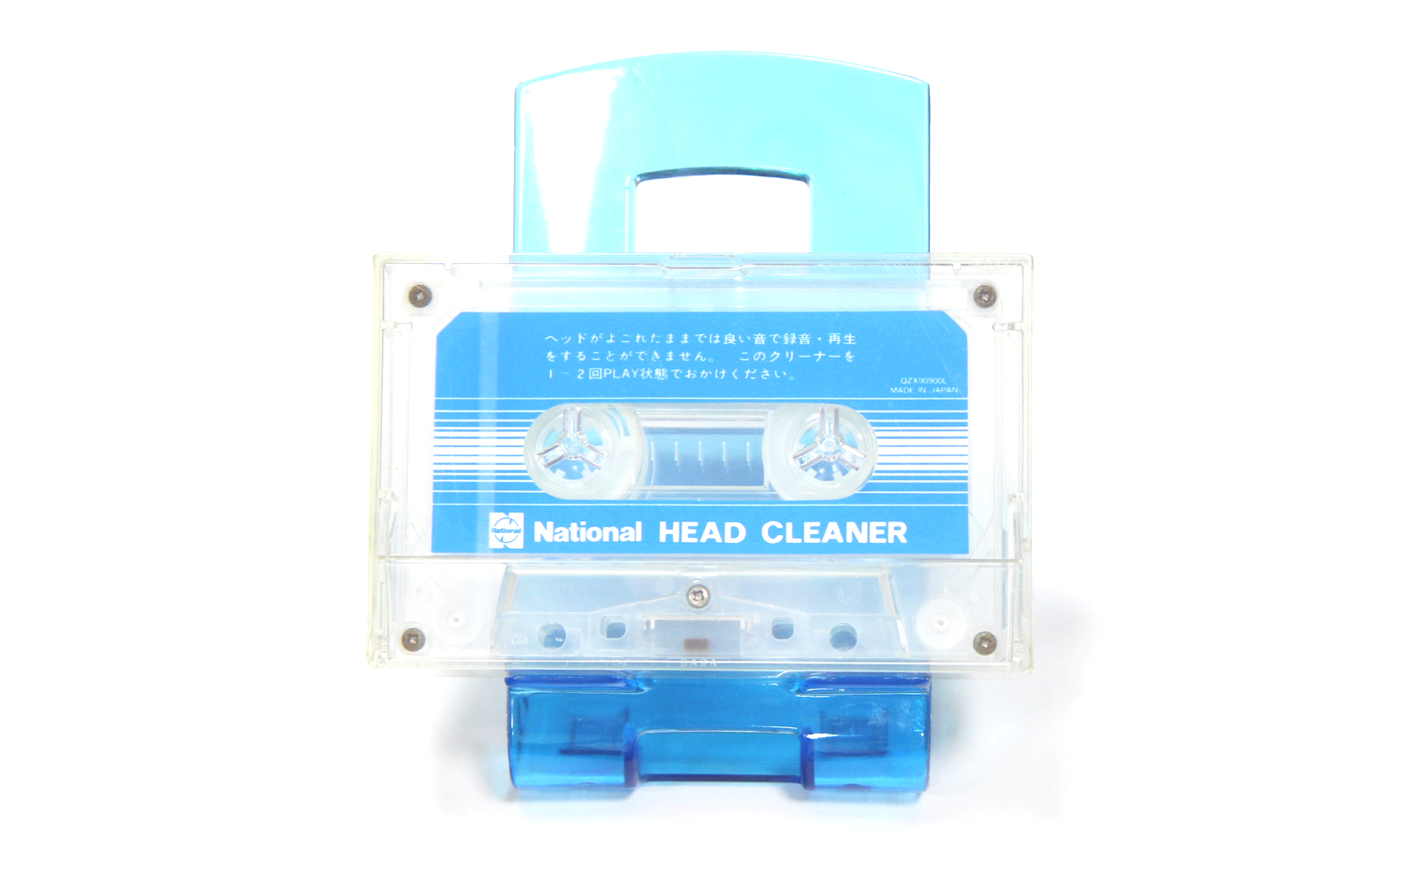 NATIONAL Head Cleaner